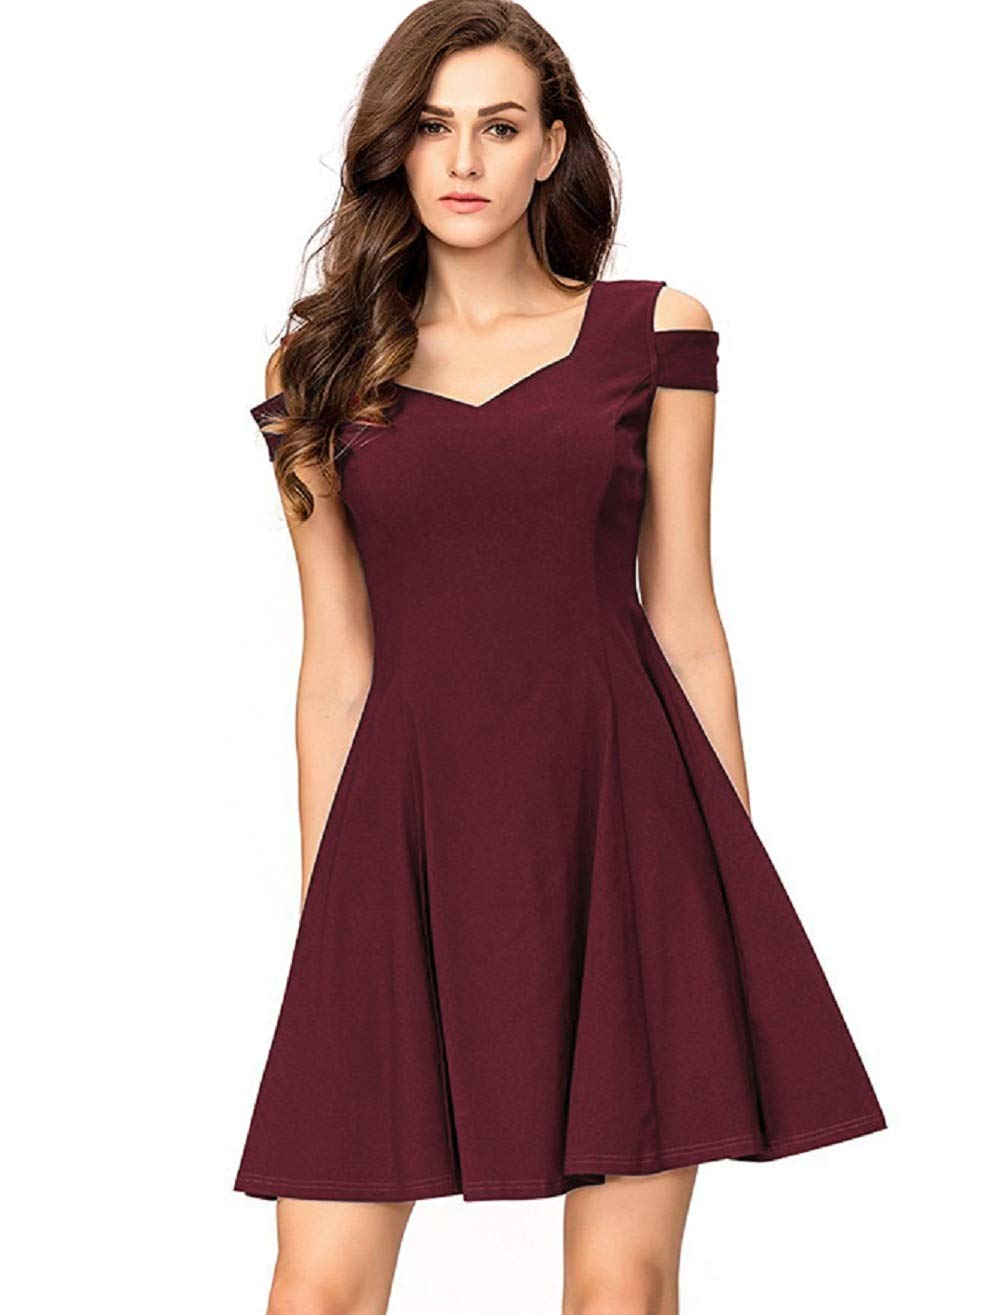 InsNova Burgundy Cold Shoulder A-Line Semi